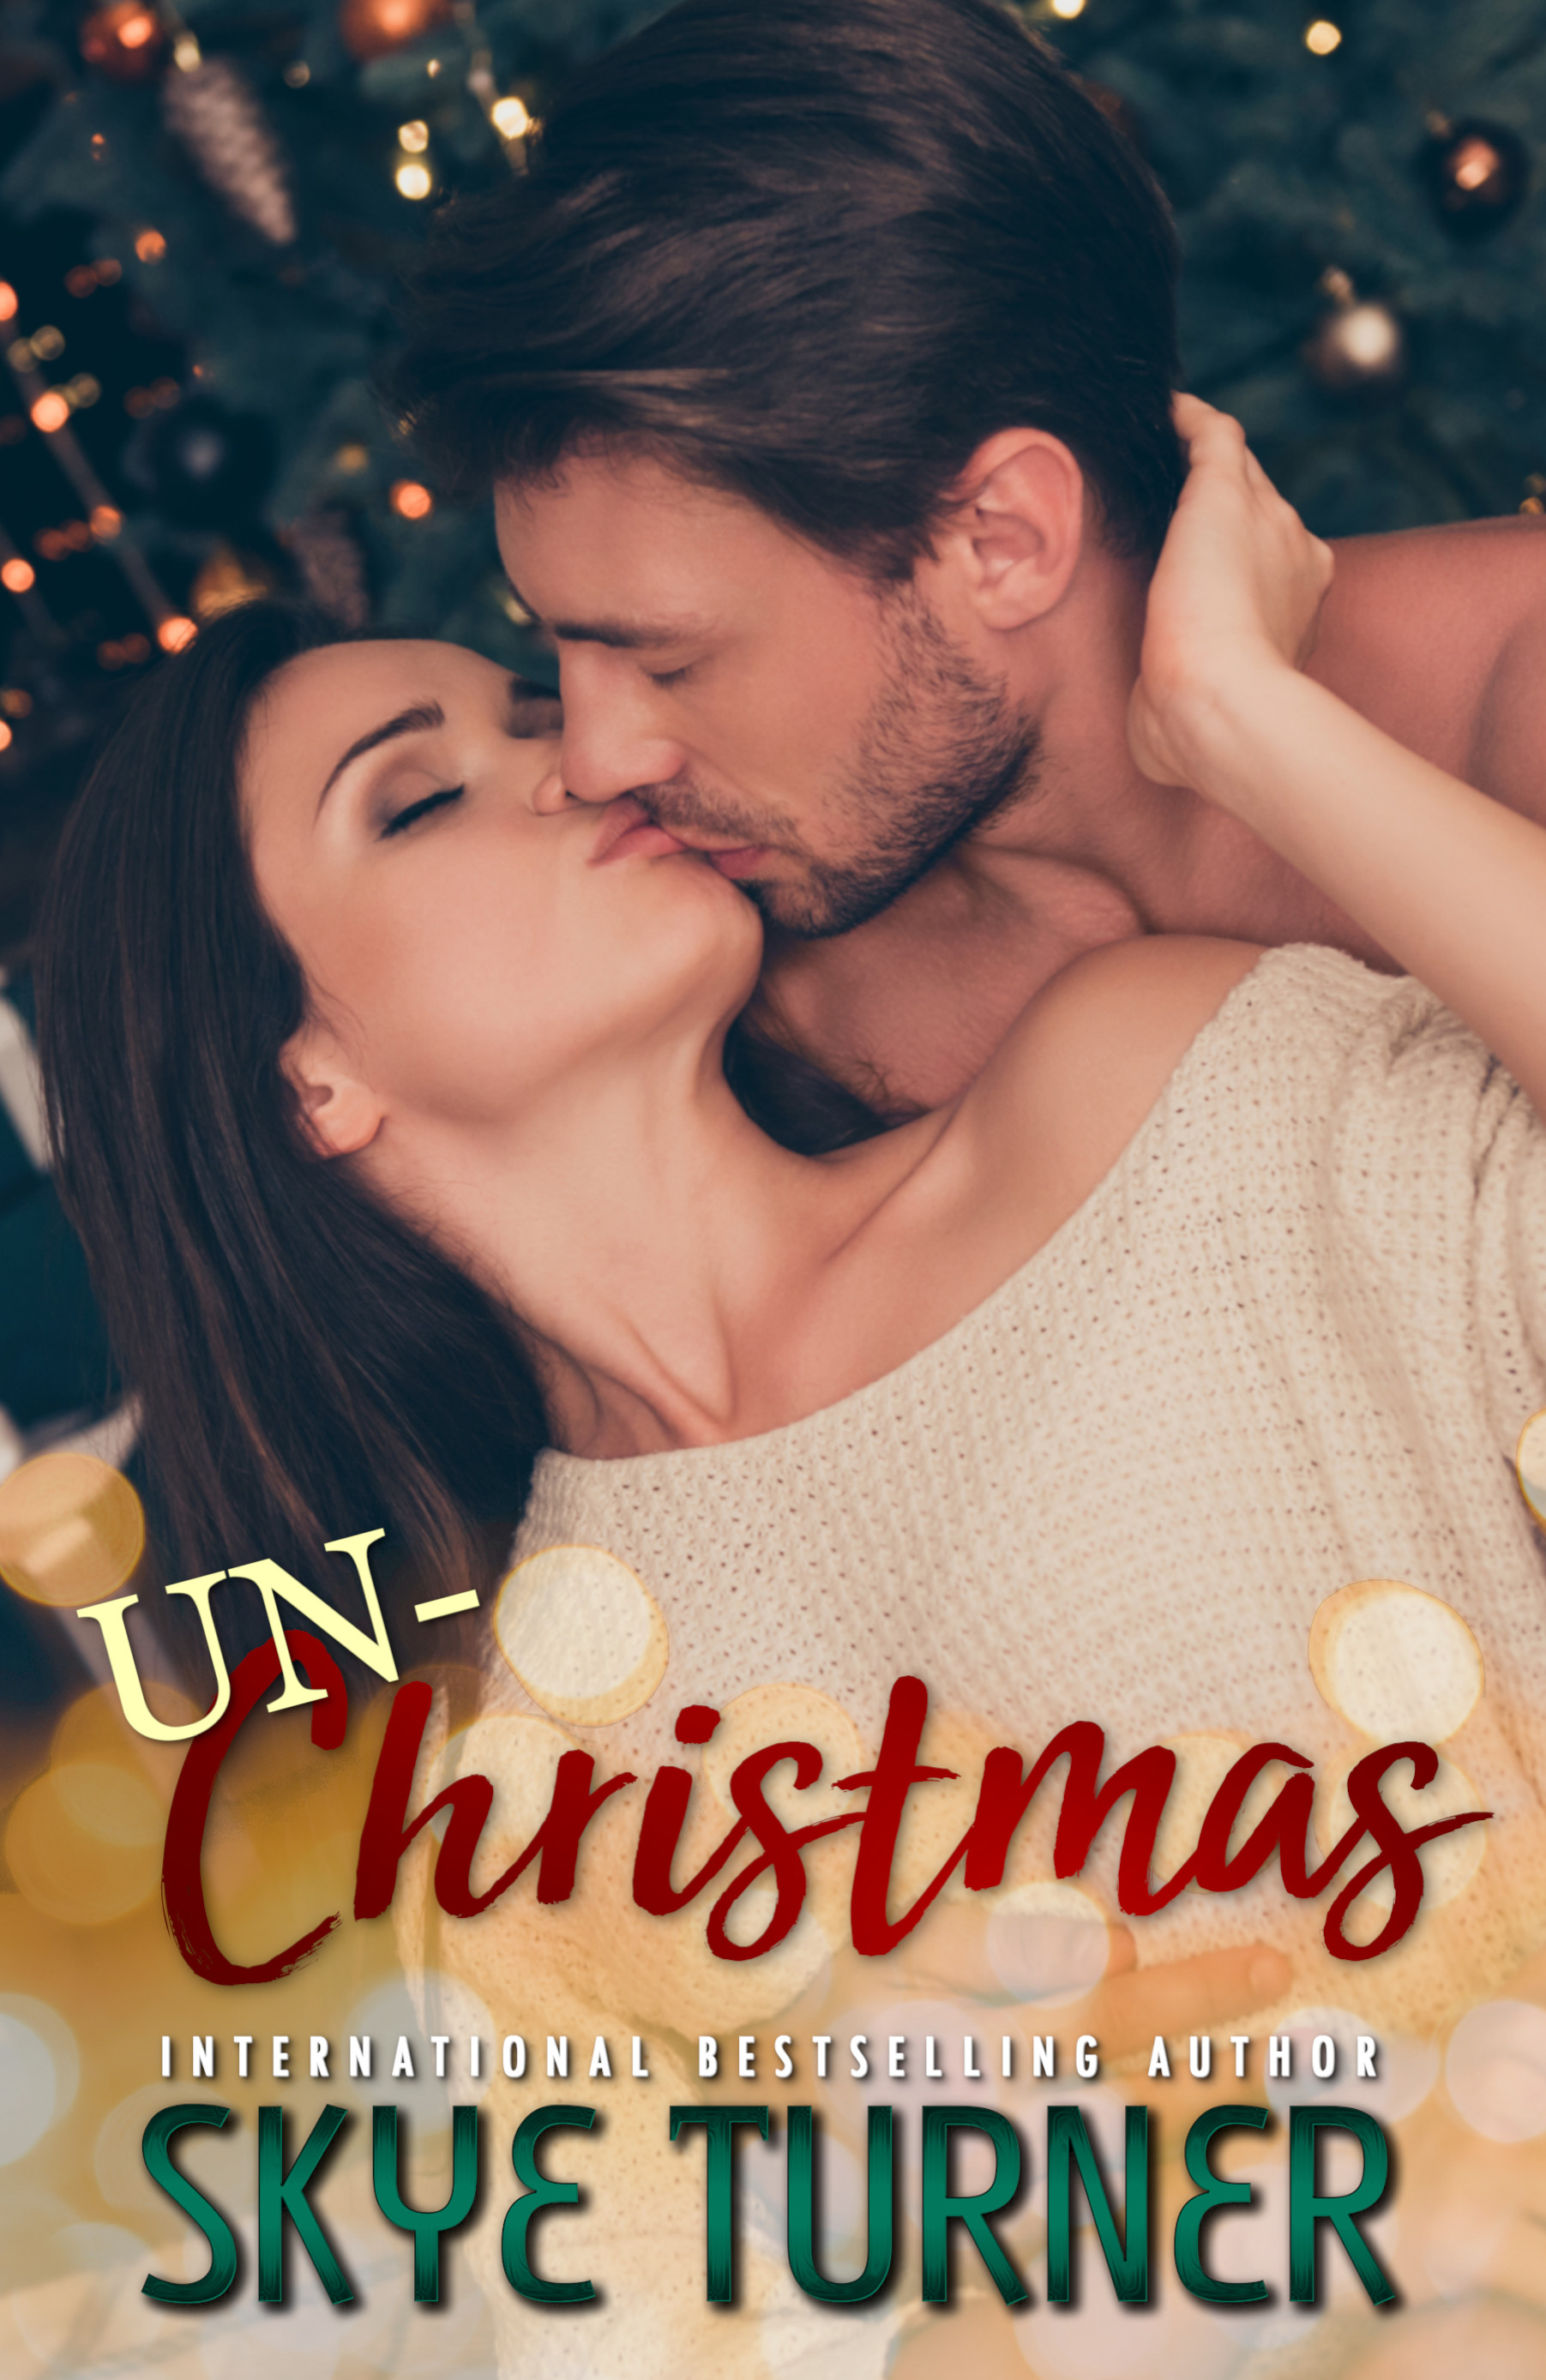 UnChristmas eCover